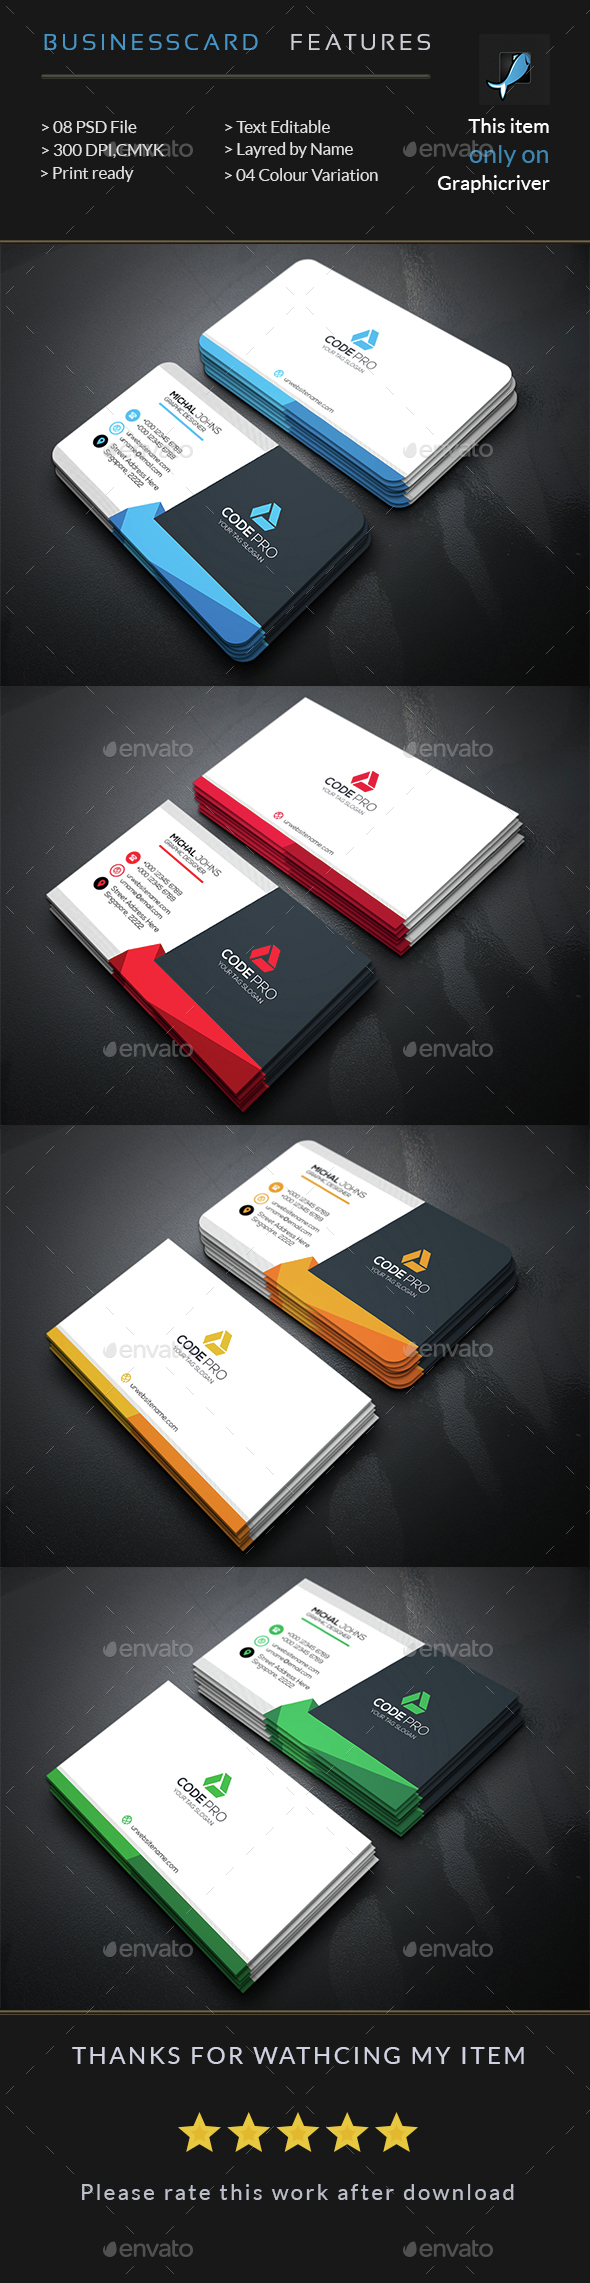 creative business card  u2014 photoshop psd  official  all